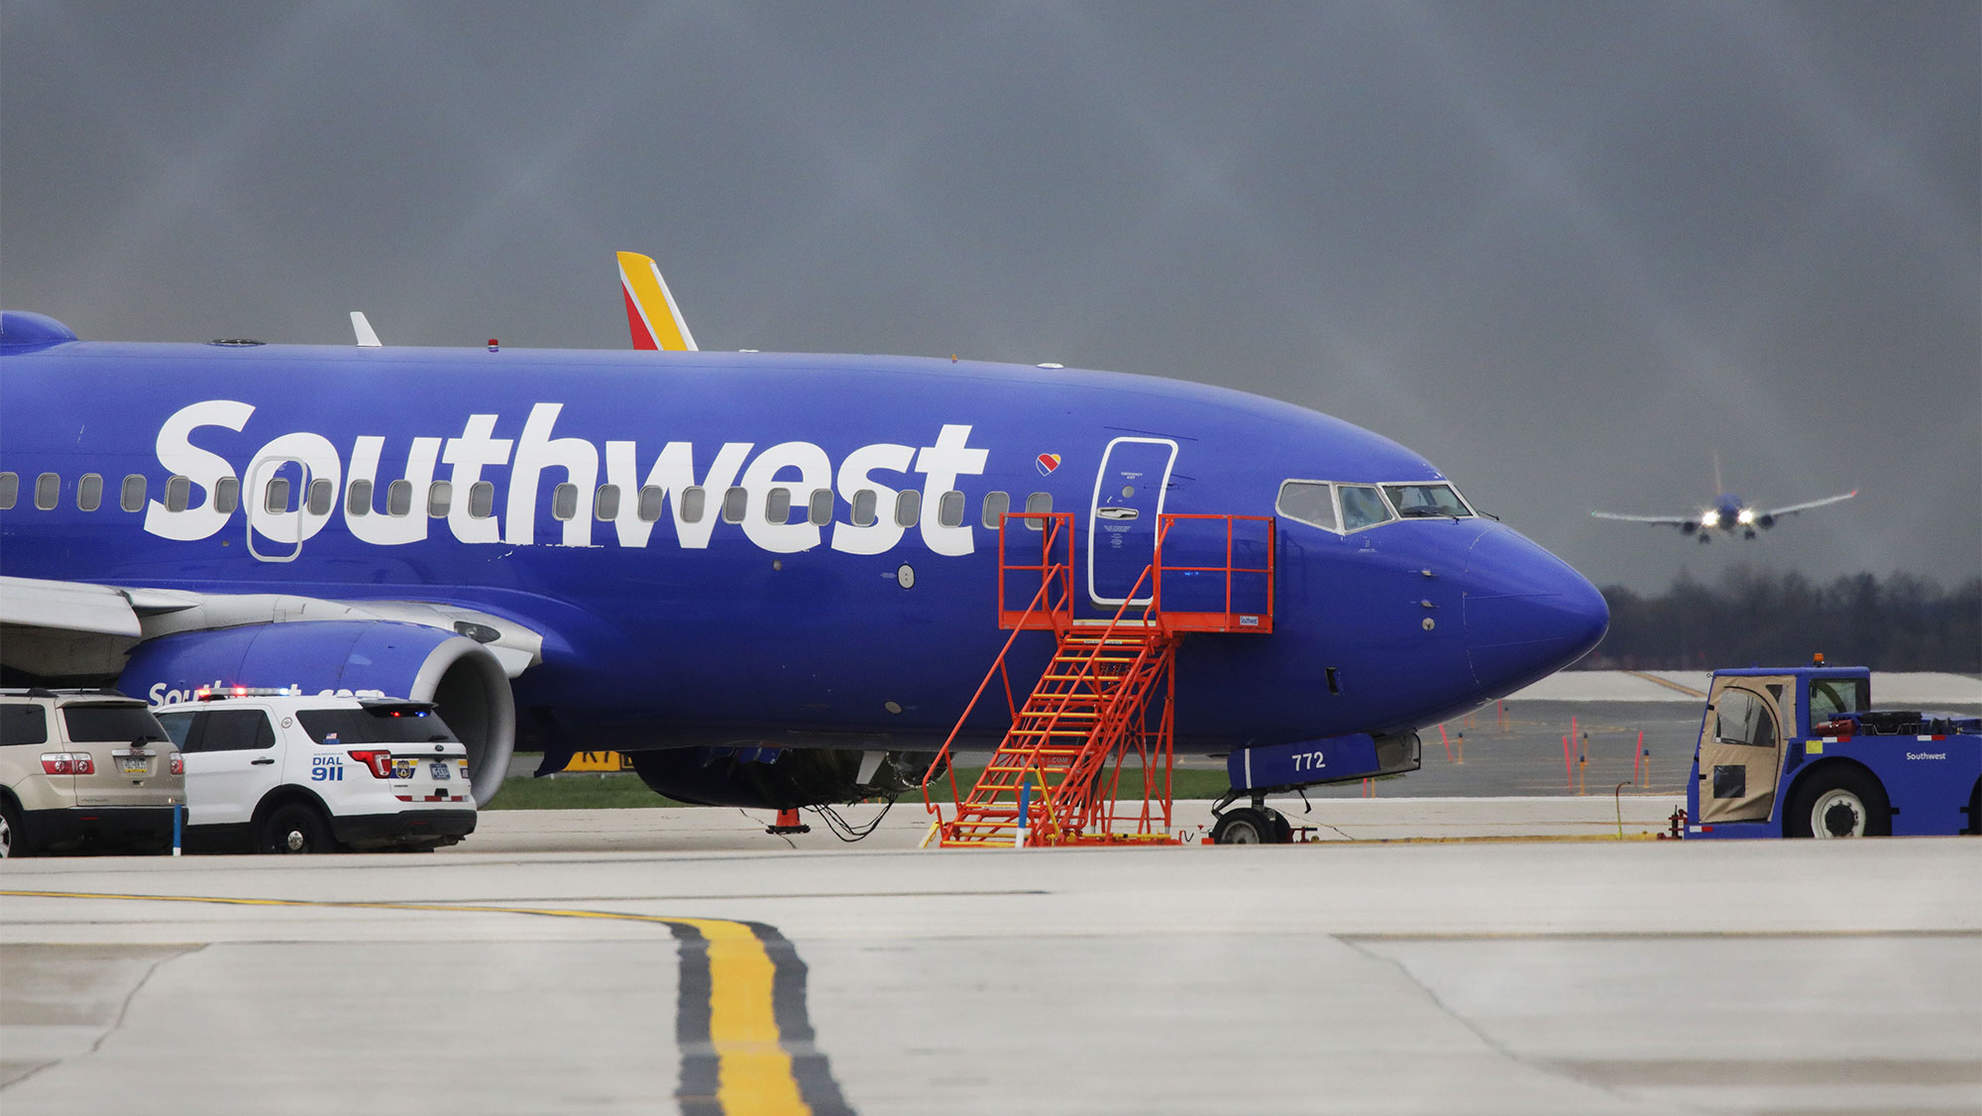 Southwest Airlines Passengers on Four Separate Flights May Have Been Exposed to Measles